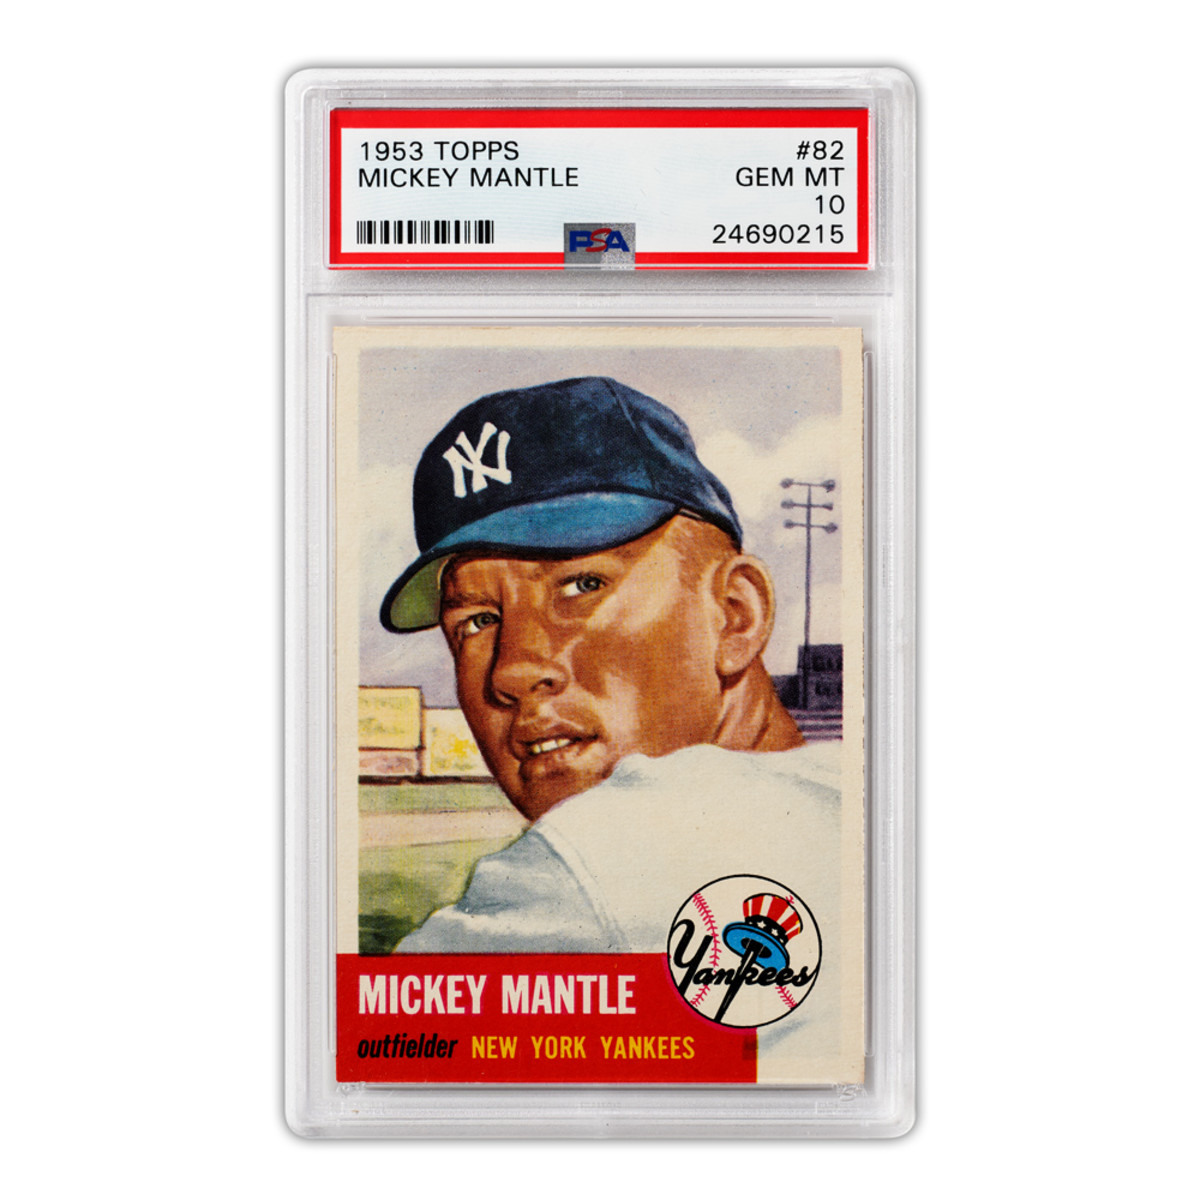 A 1953 Mickey Mantle card available to investors at Collectable.